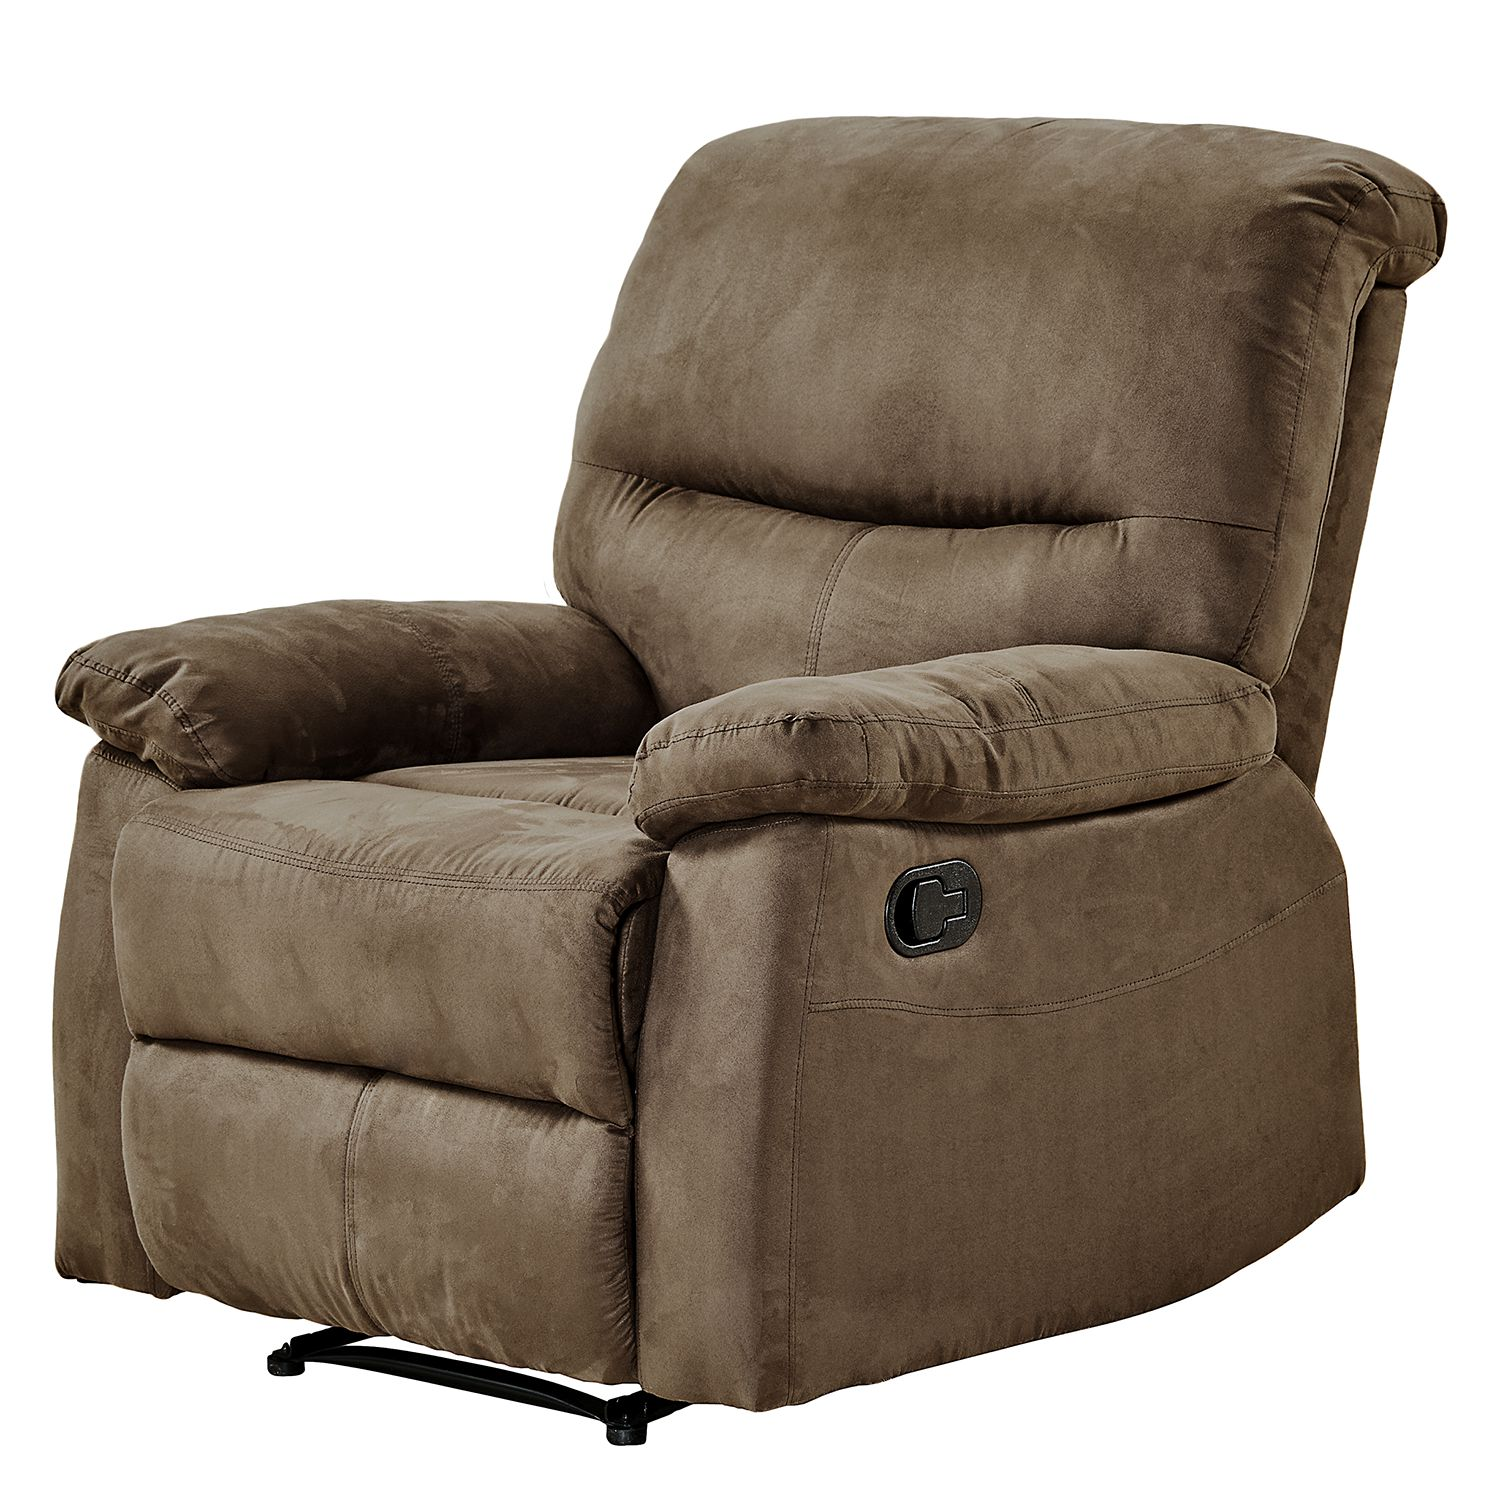 Relaxfauteuil Donnes, Modoform